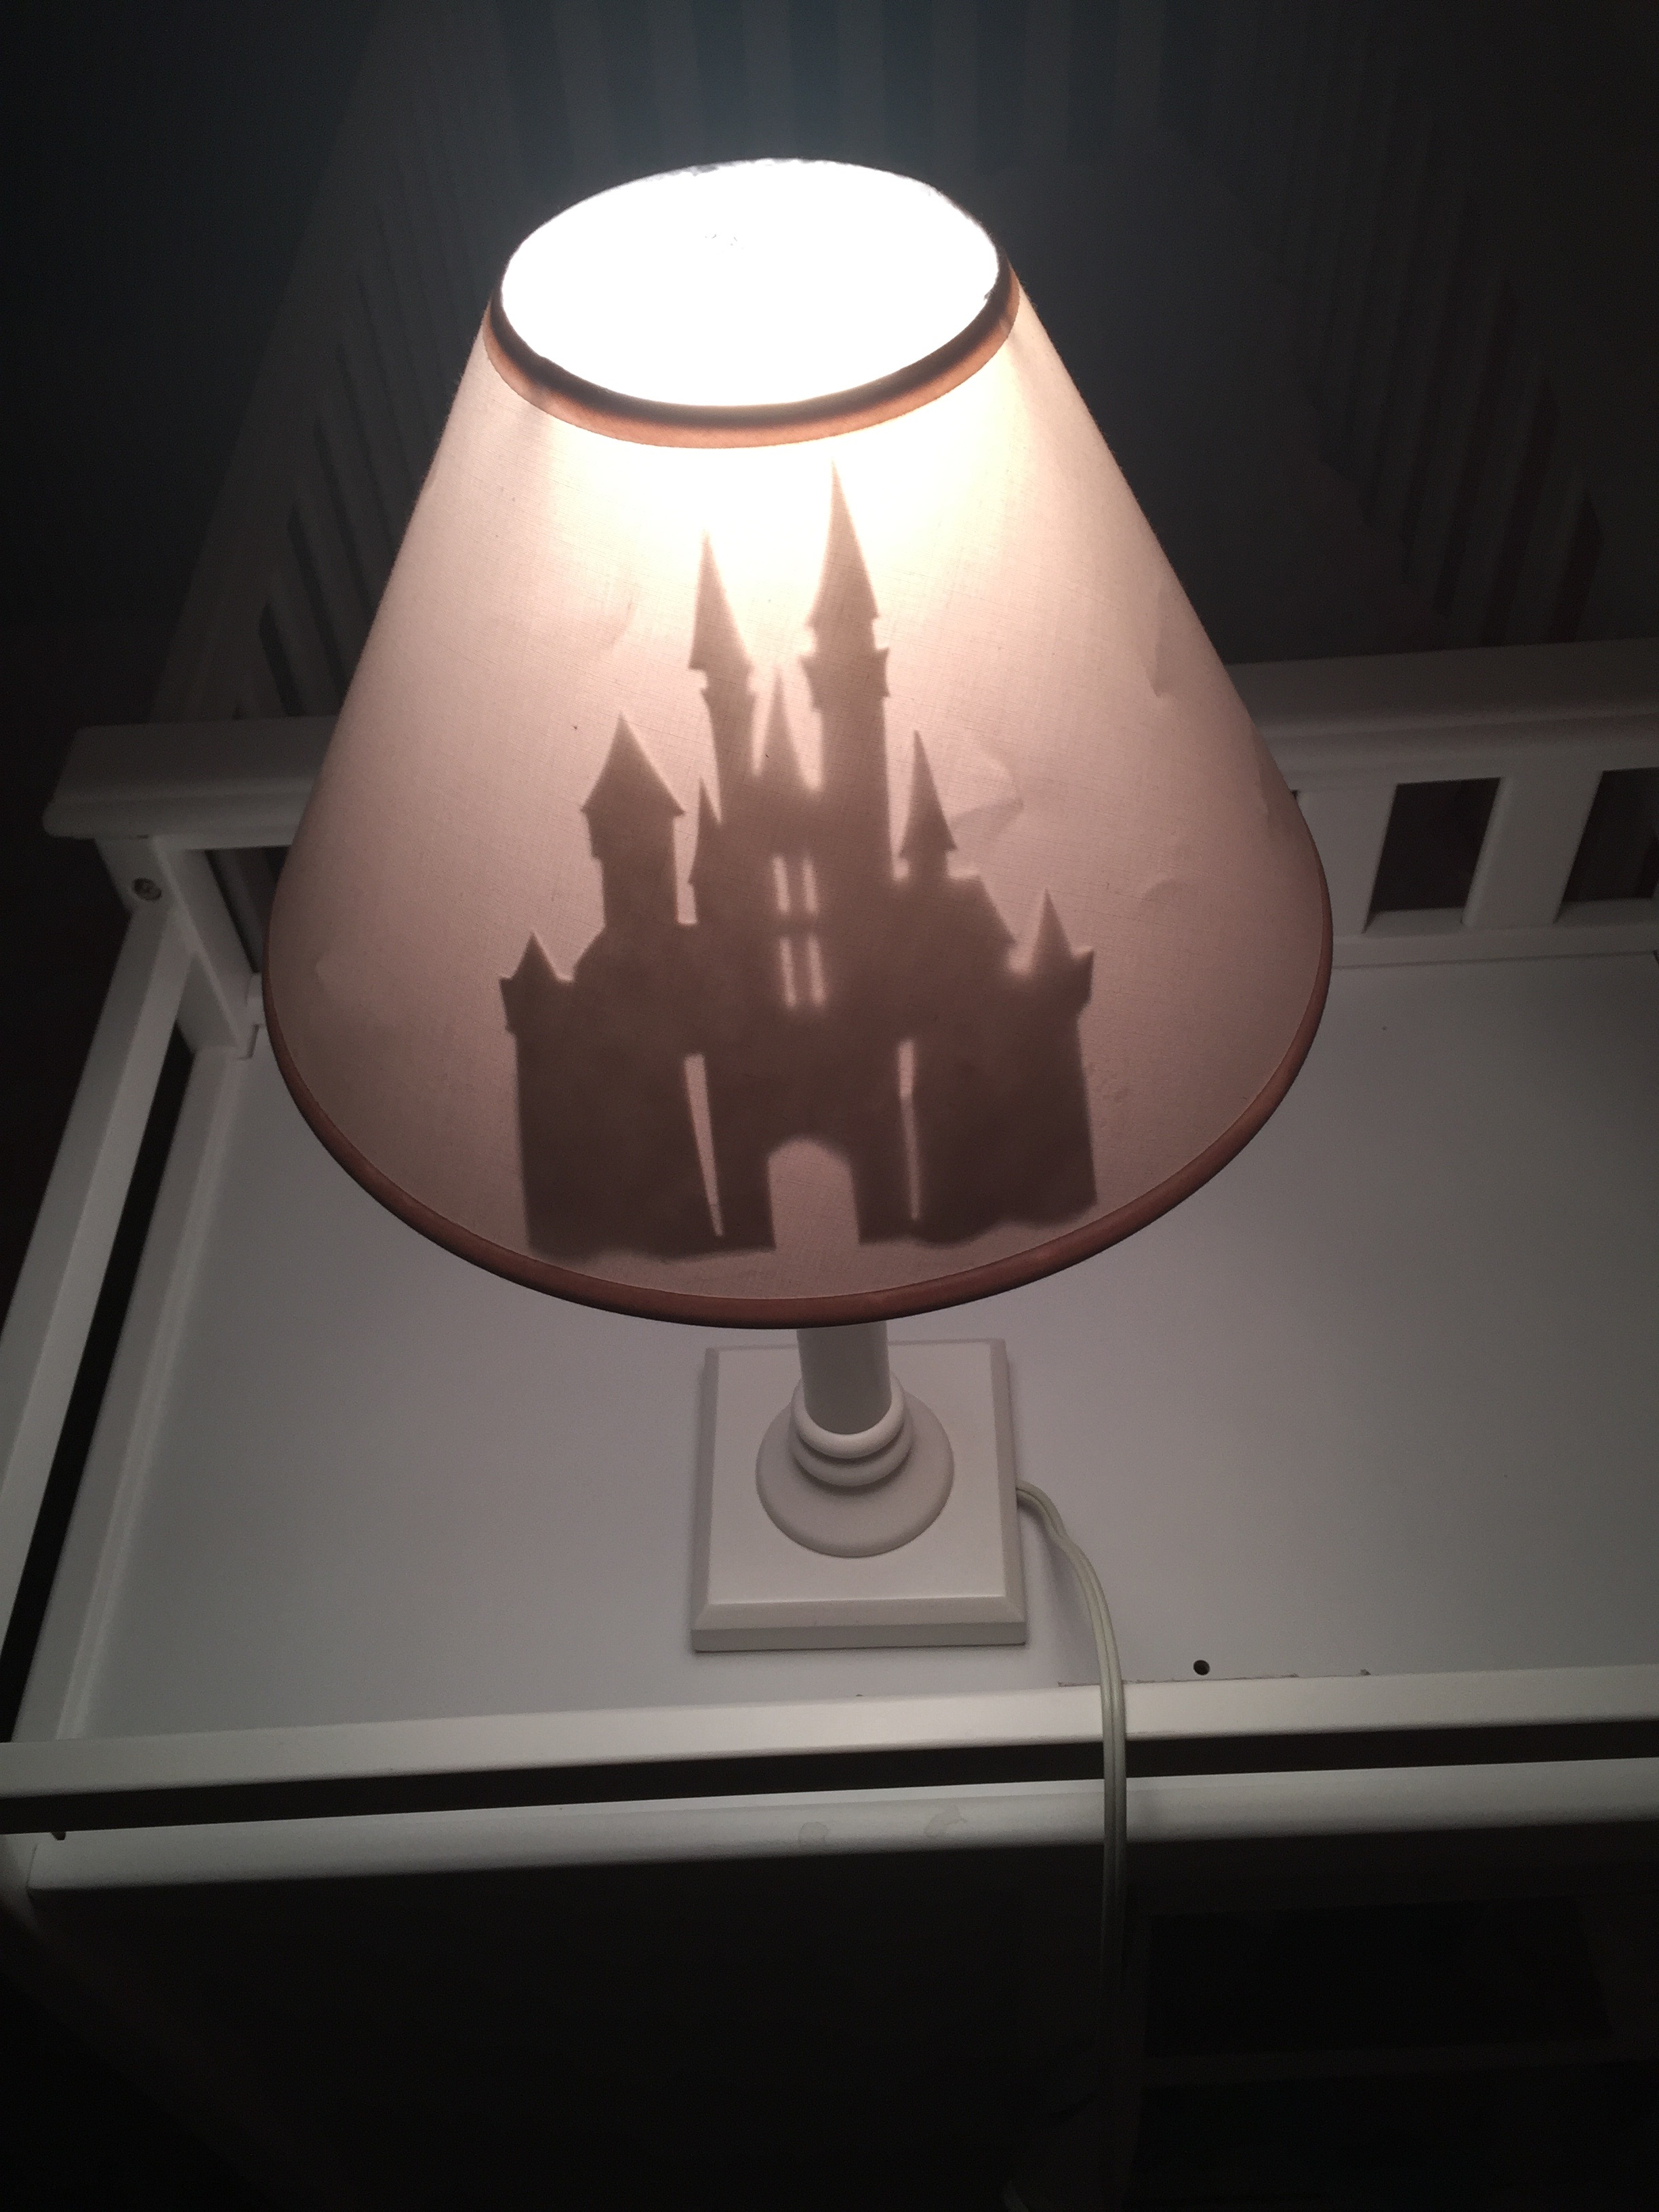 Diy disney lamp shade blog blog - Diy lamp shade ...